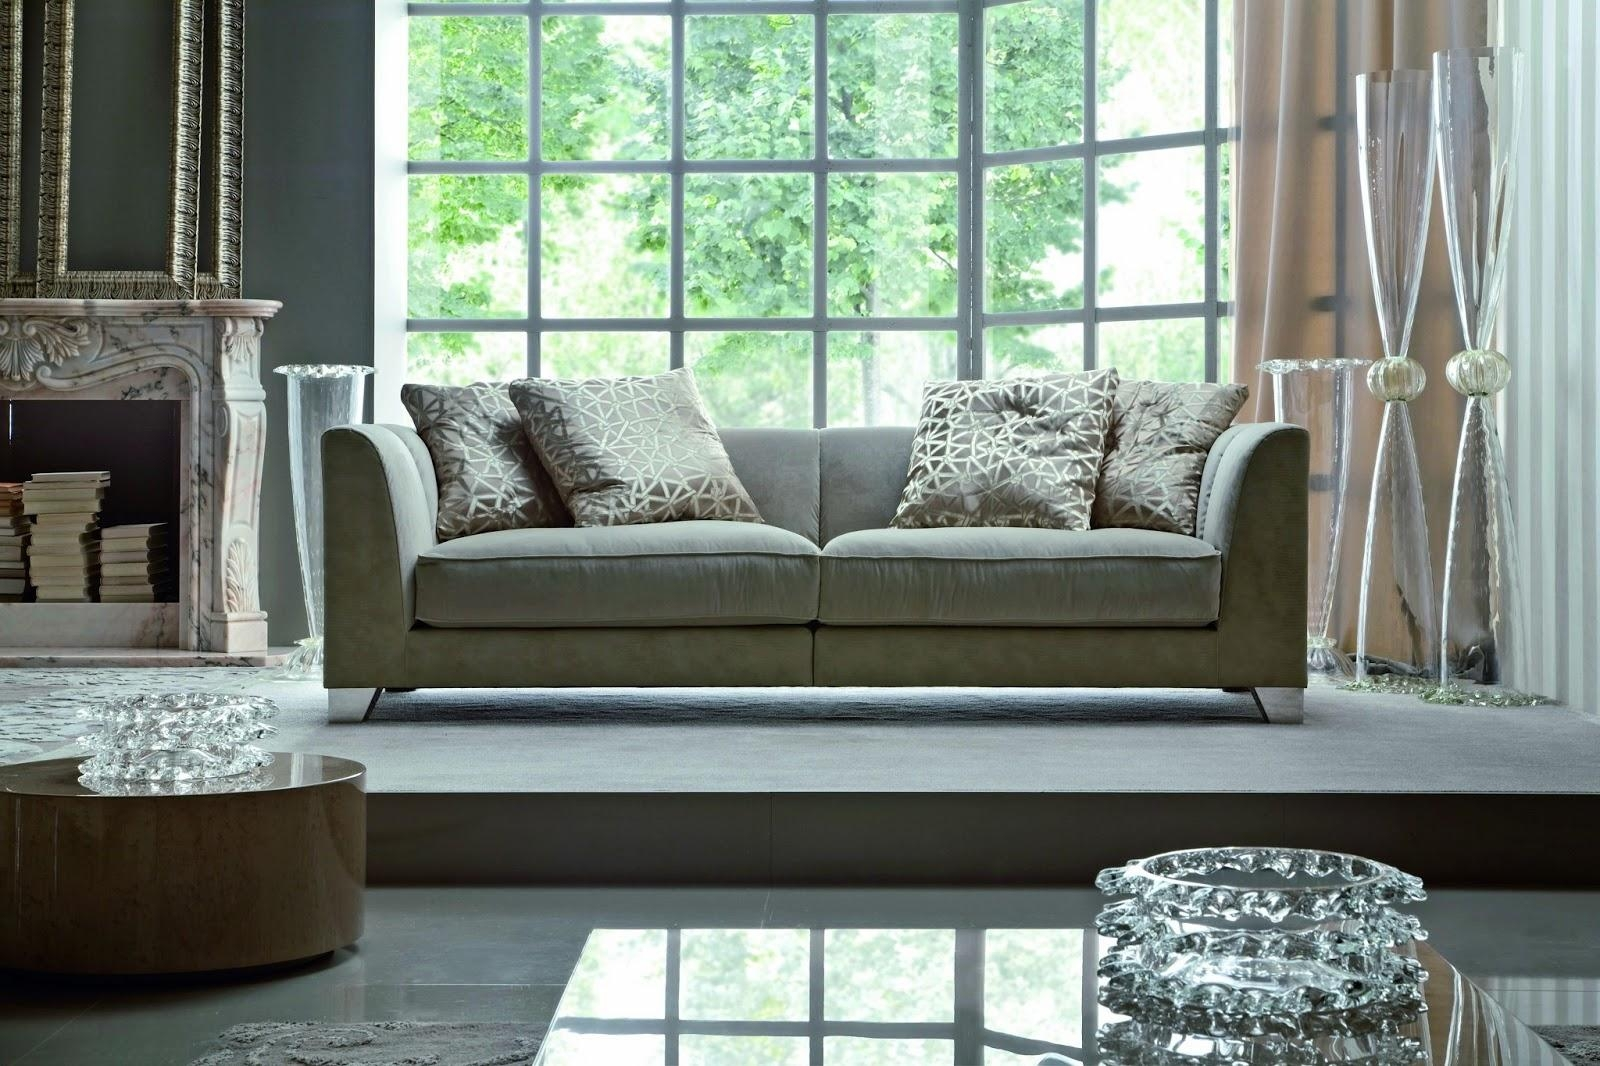 2013 Modern Living Room Sofas Furniture Design | Home Interiors For Elegant Sofas And Chairs (View 20 of 20)